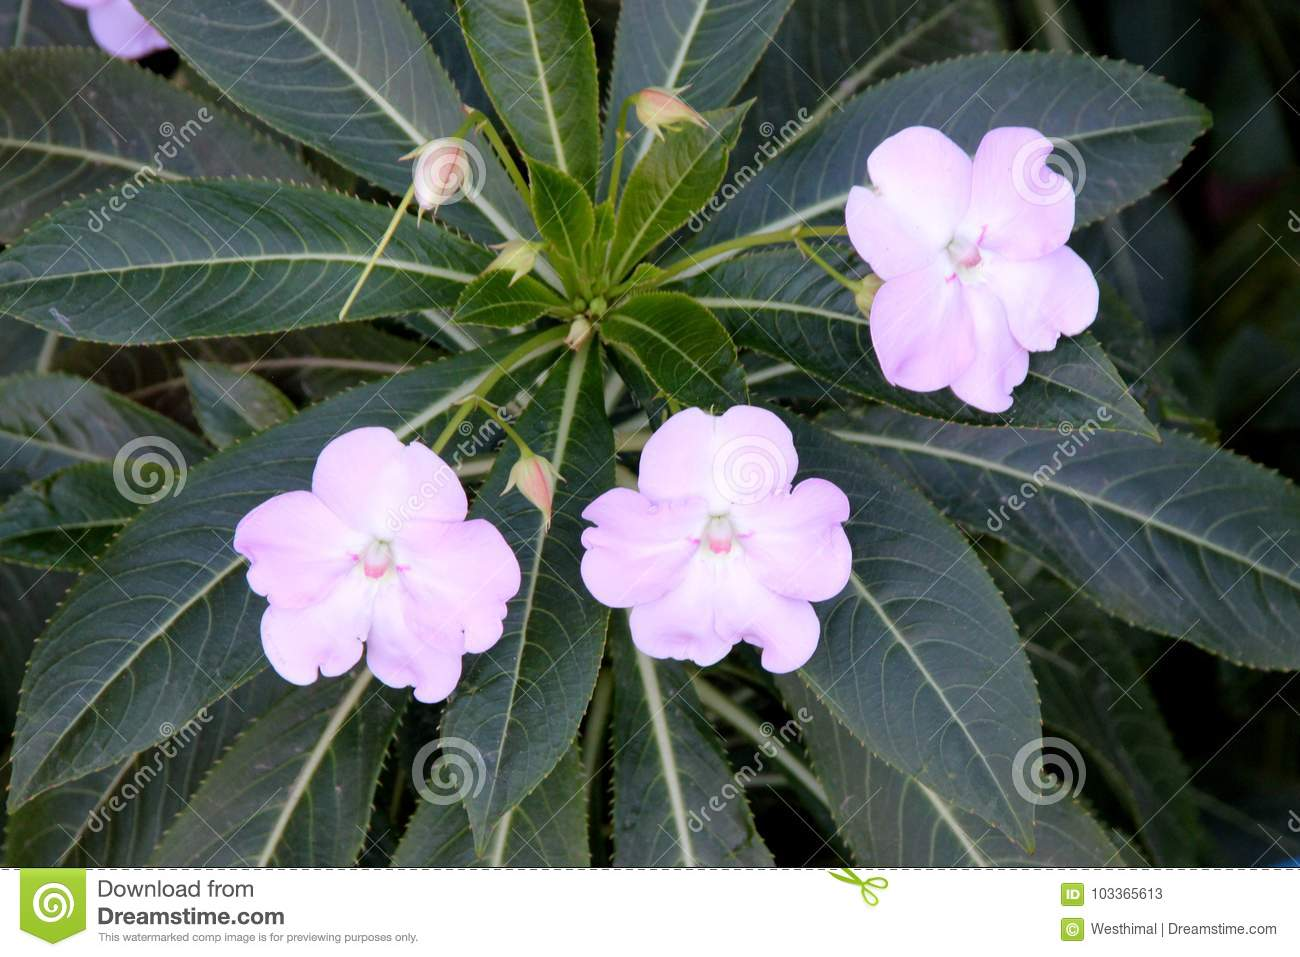 Poor mans rhododendron impatiens sodenii stock image image of poor mans rhododendron impatiens sodenii bushy perennial with widely lance shaped leaves and showy up to 5 cm wide white to pink flowers with long mightylinksfo